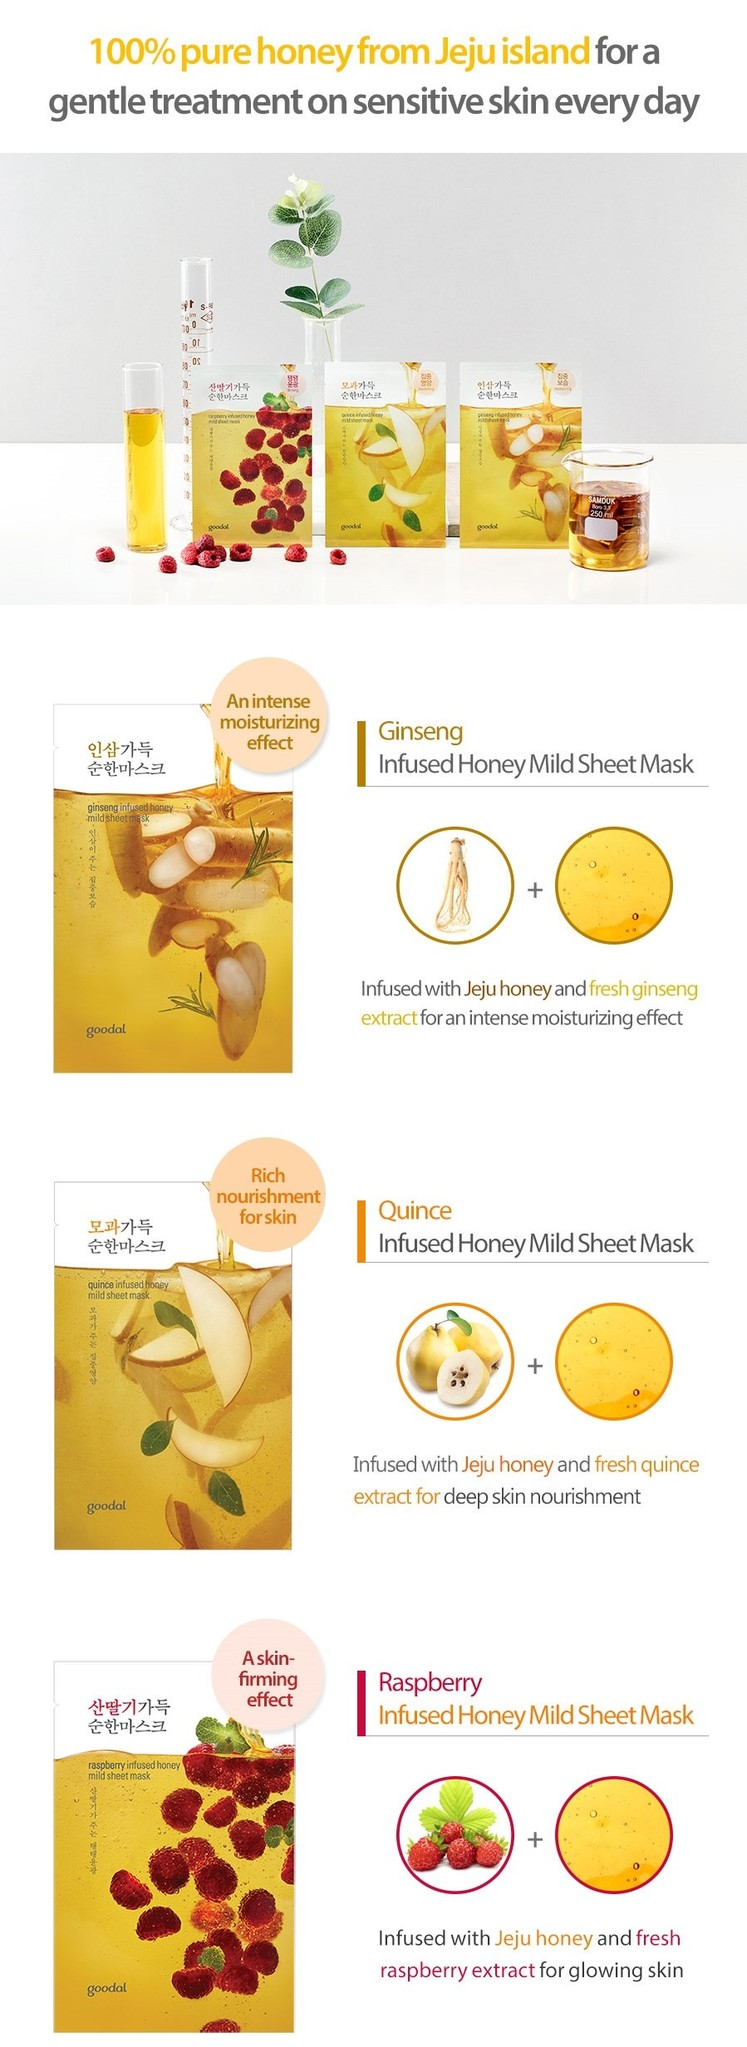 quince infused honey mild sheet mask-7